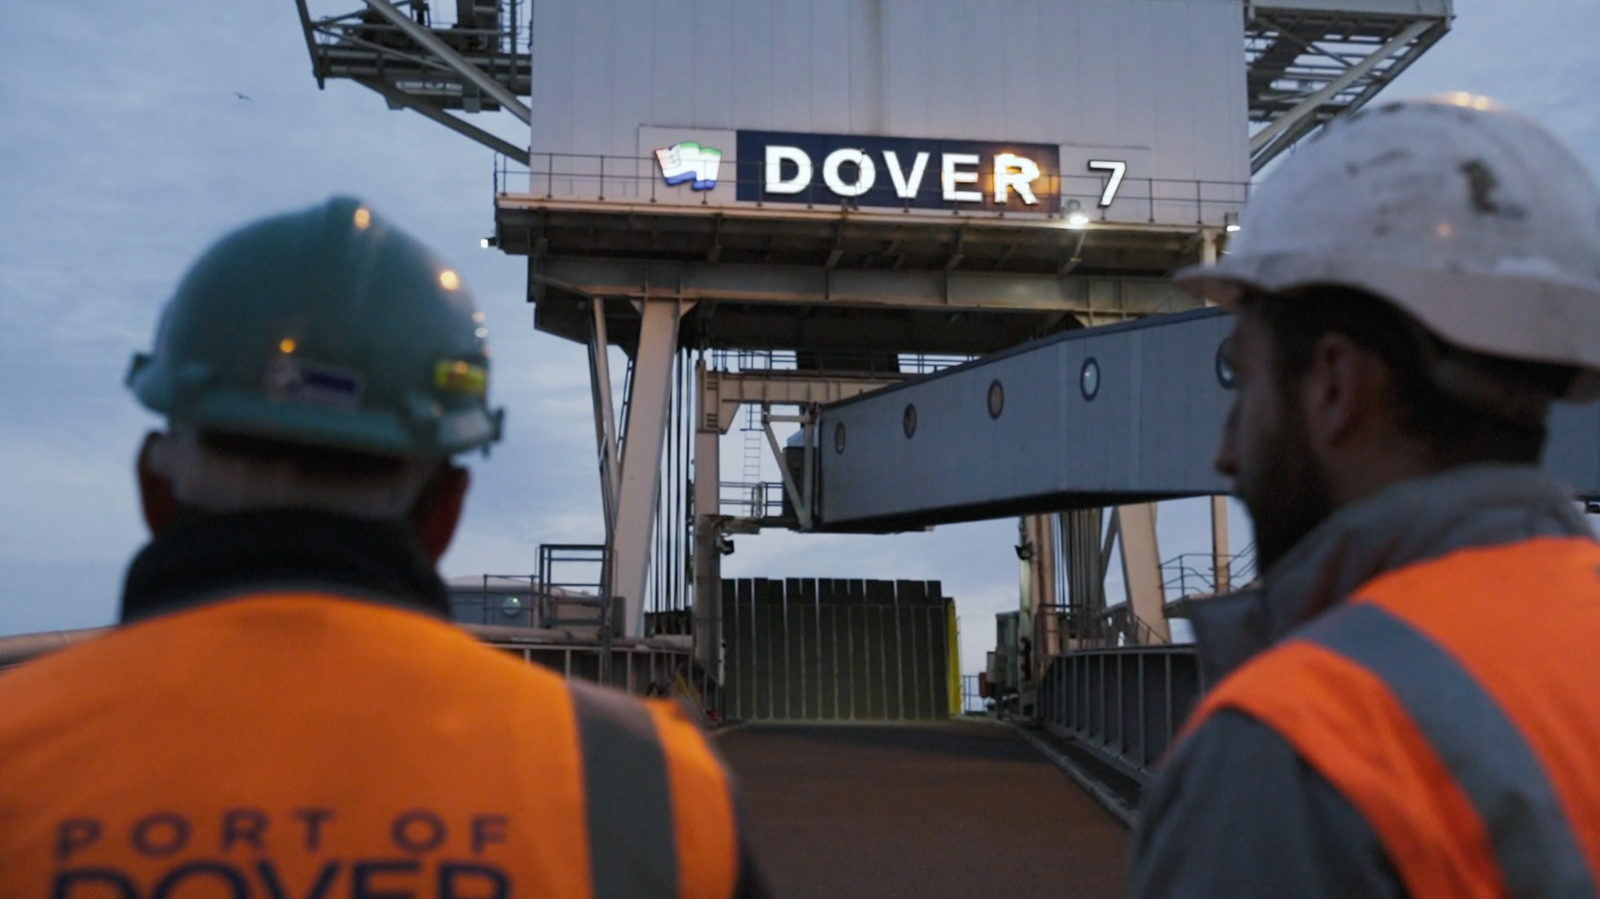 Beegrip - Advanced surface coatings. Trusted by the global supply chain. A short cinematic film documenting the resurfacing of a linkspan at The Port of Dover, England